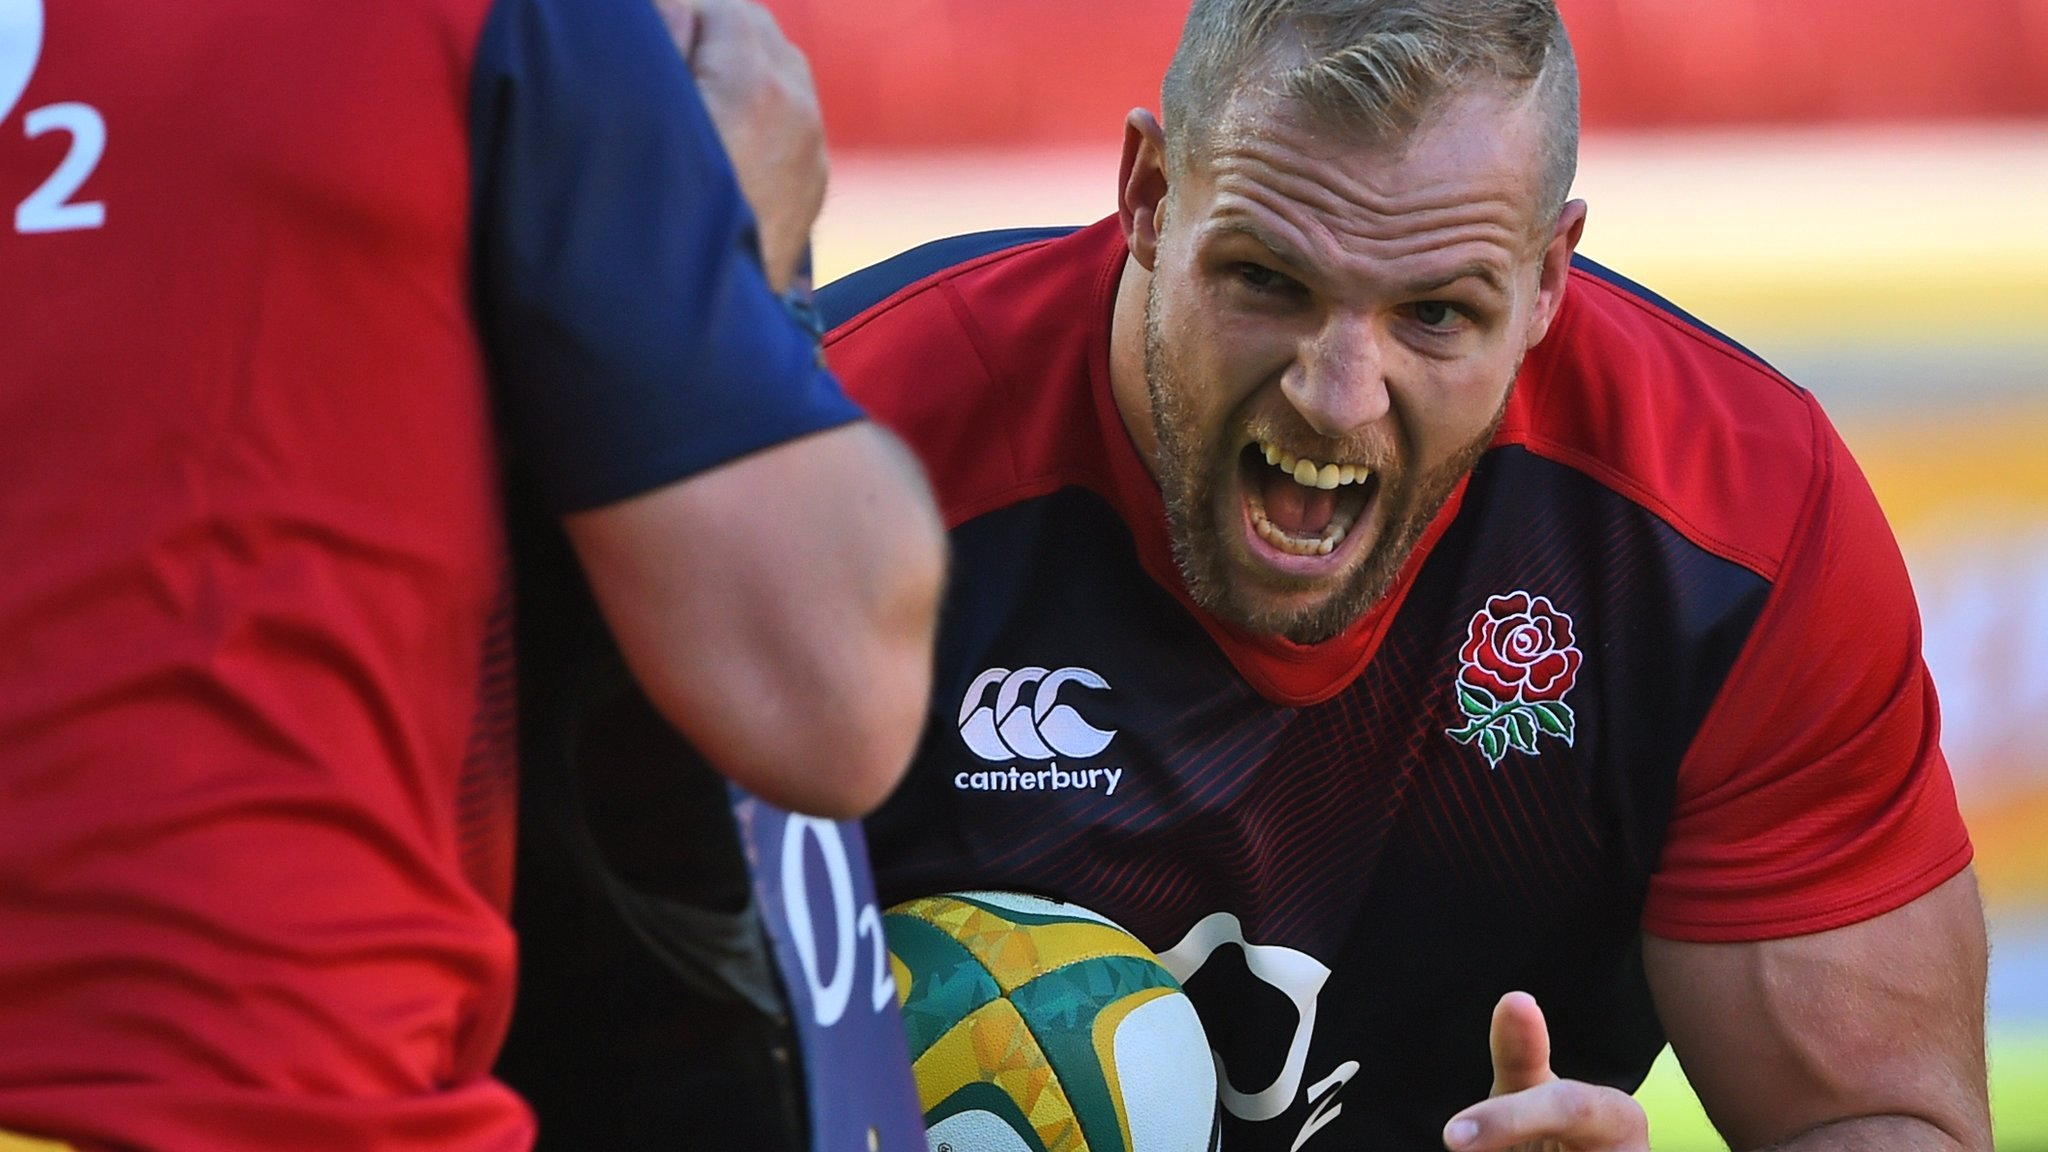 England flanker Haskell feared career might be over